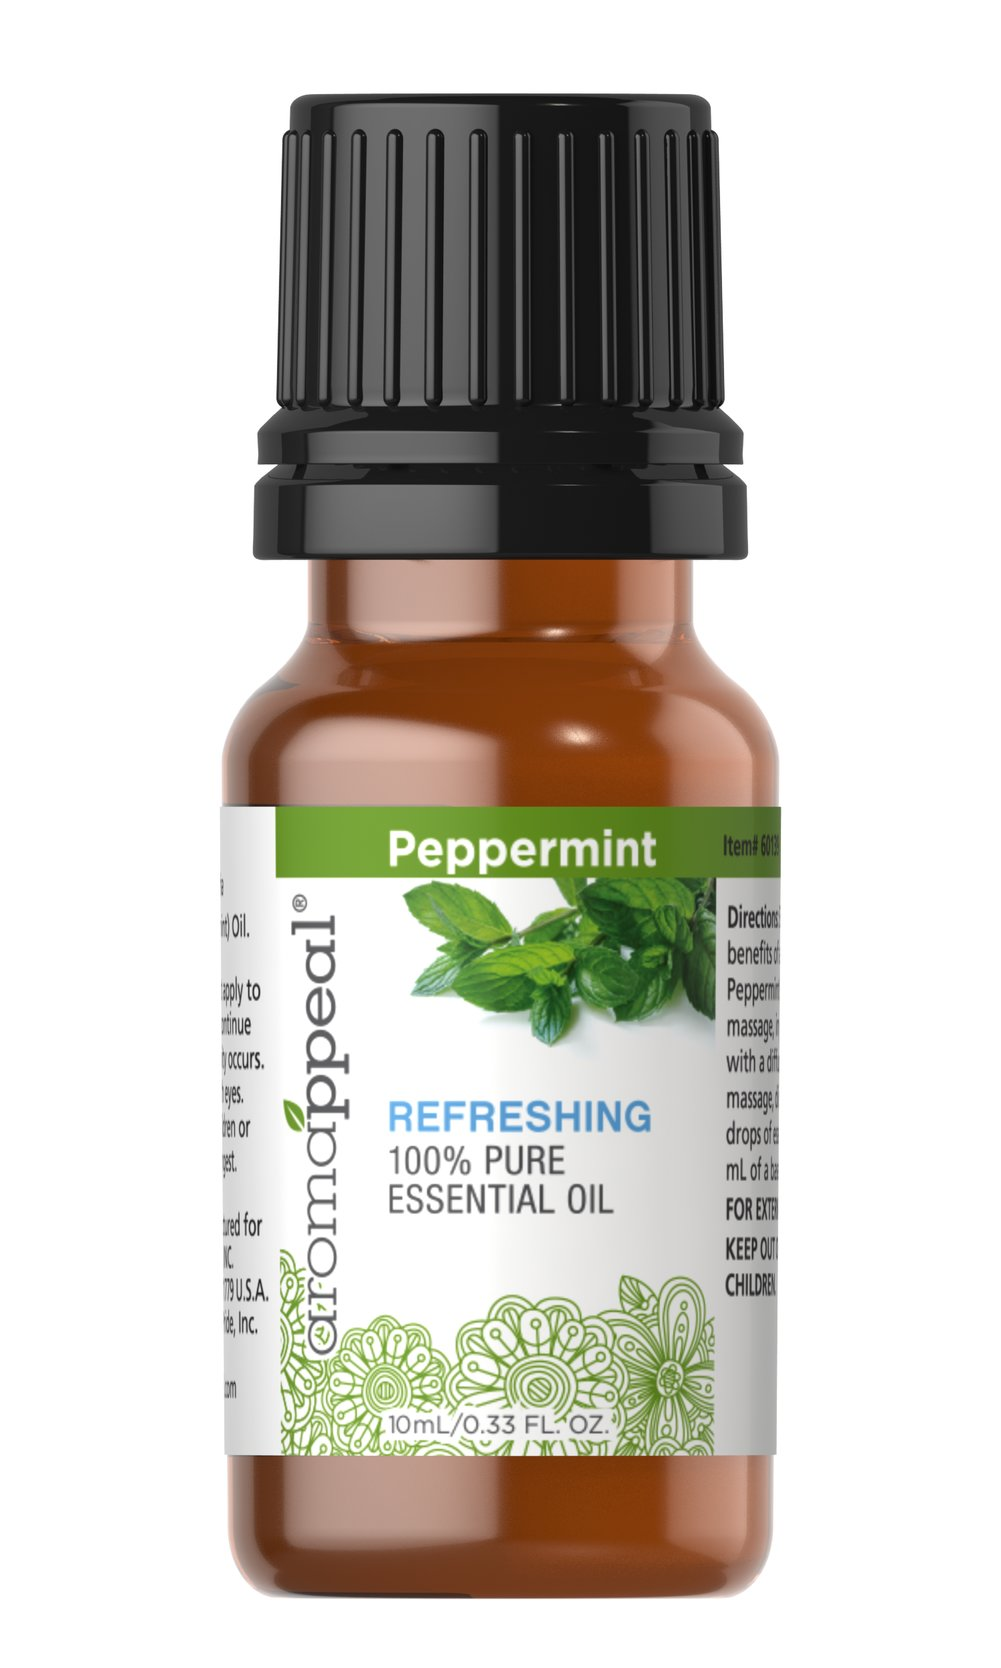 "Peppermint 100% Pure Essential Oil <p>Few scents are as distinctly tantalizing as the cooling, minty vibrancy of Peppermint.</p><ul><li><span class=""bold-pink"">Traditional Uses:</span> Rejuvenating especially when rubbed on the temples, refreshing,  uplifting, digestion, circulation, skin soothing, neurotonic for overall   nervous system health. </li><li><span class=""bold-pink"">History:</span>  Few scents are as dist"